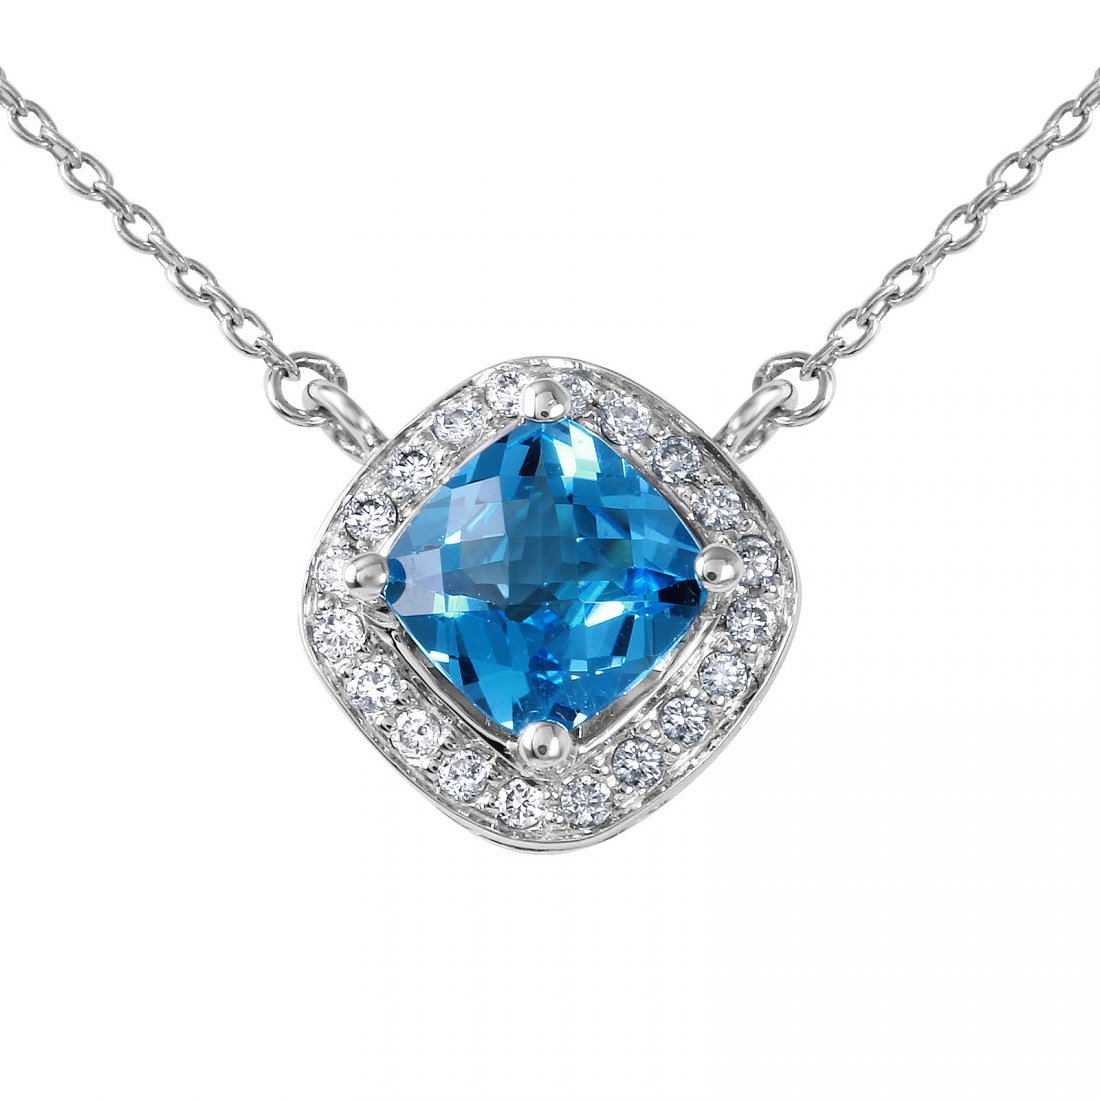 14KT White Gold Topaz and Diamond Pendant Necklace